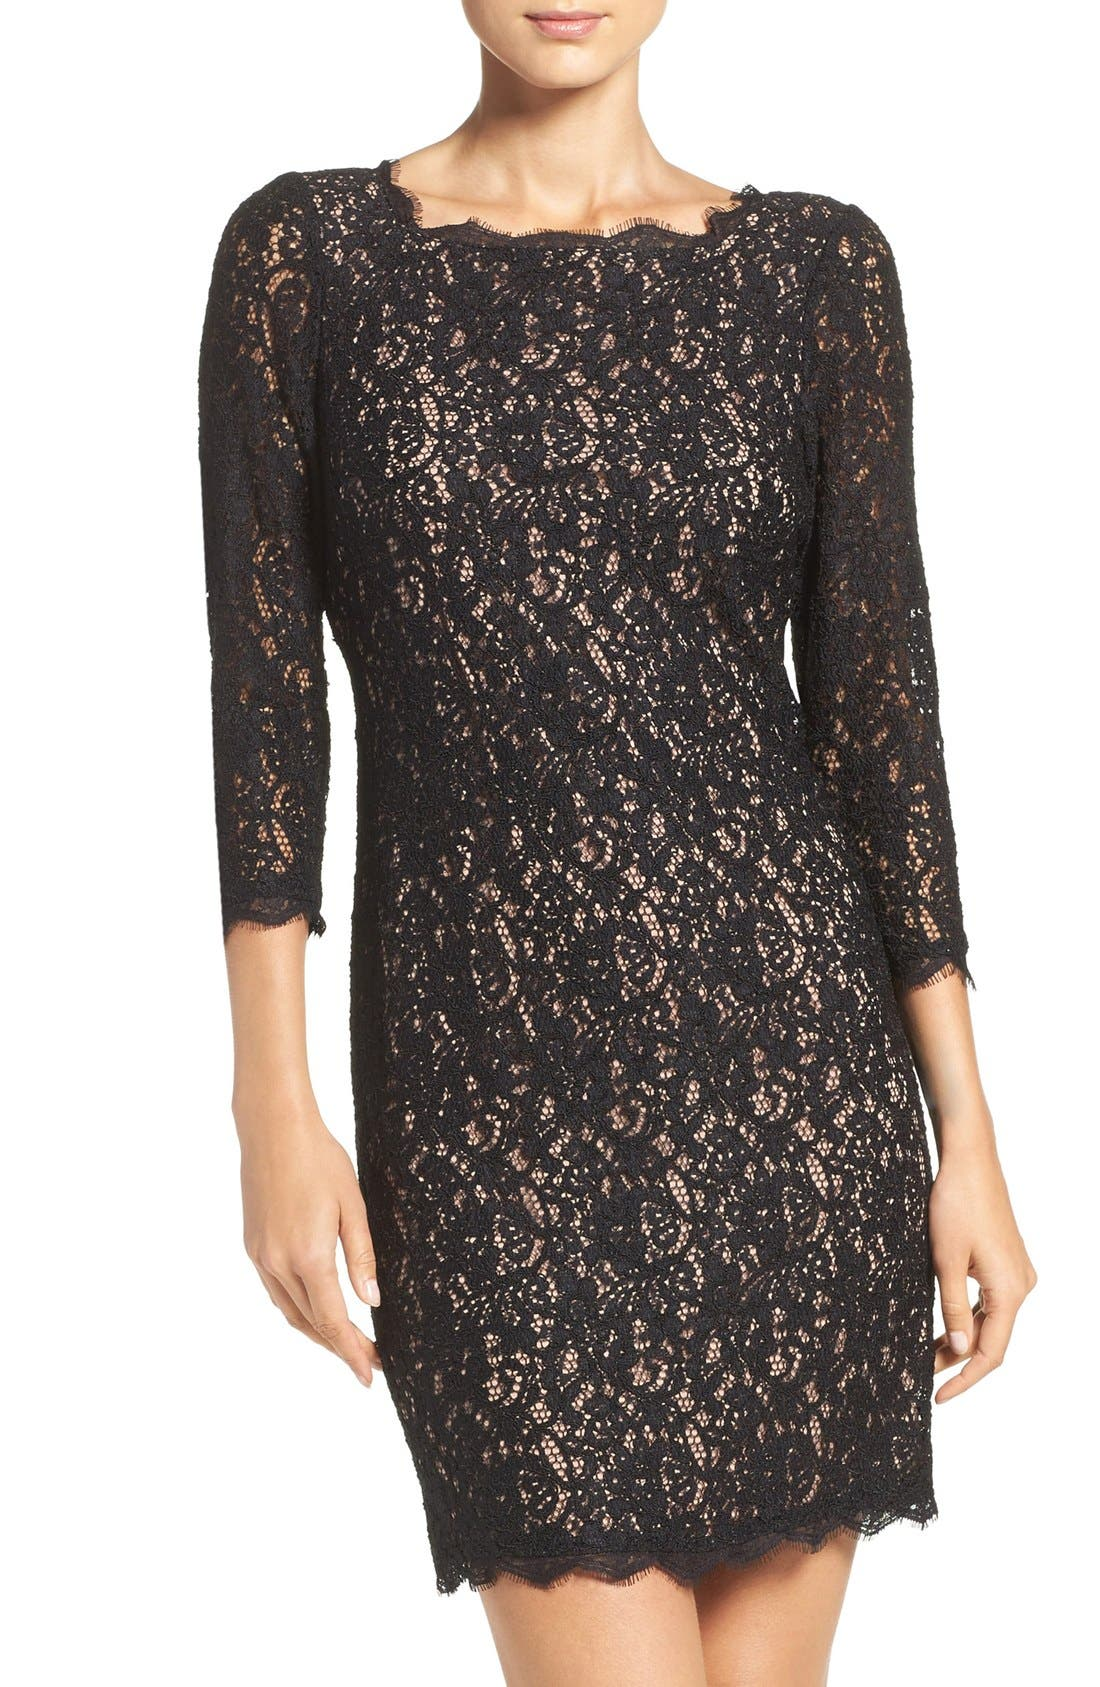 Alternate Image 1 Selected - Adrianna Papell Lace Overlay Sheath Dress (Regular & Petite)